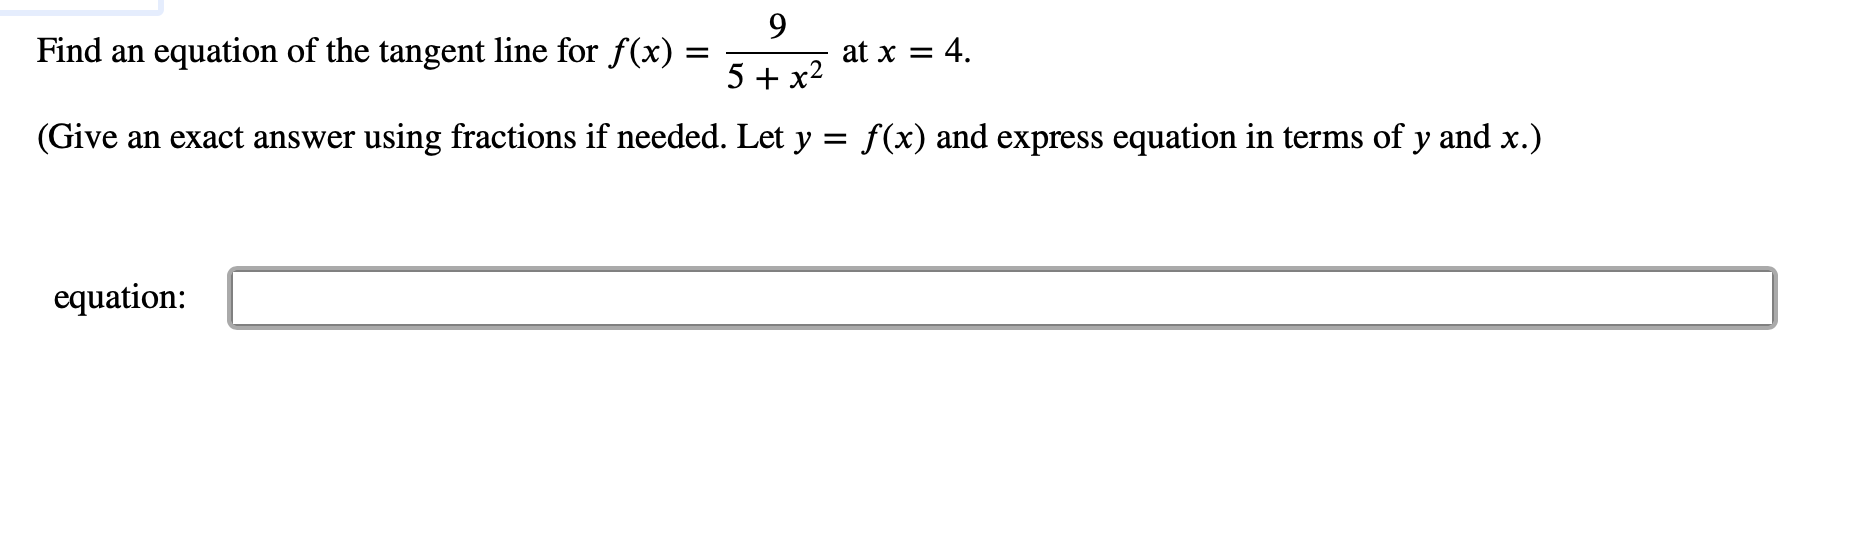 9 at x 4 Find an equation of the tangent line for f(x) 5 x2 f(x) and express equation in terms of y and x.) using fractions if needed. Let y (Give an exact answer equation